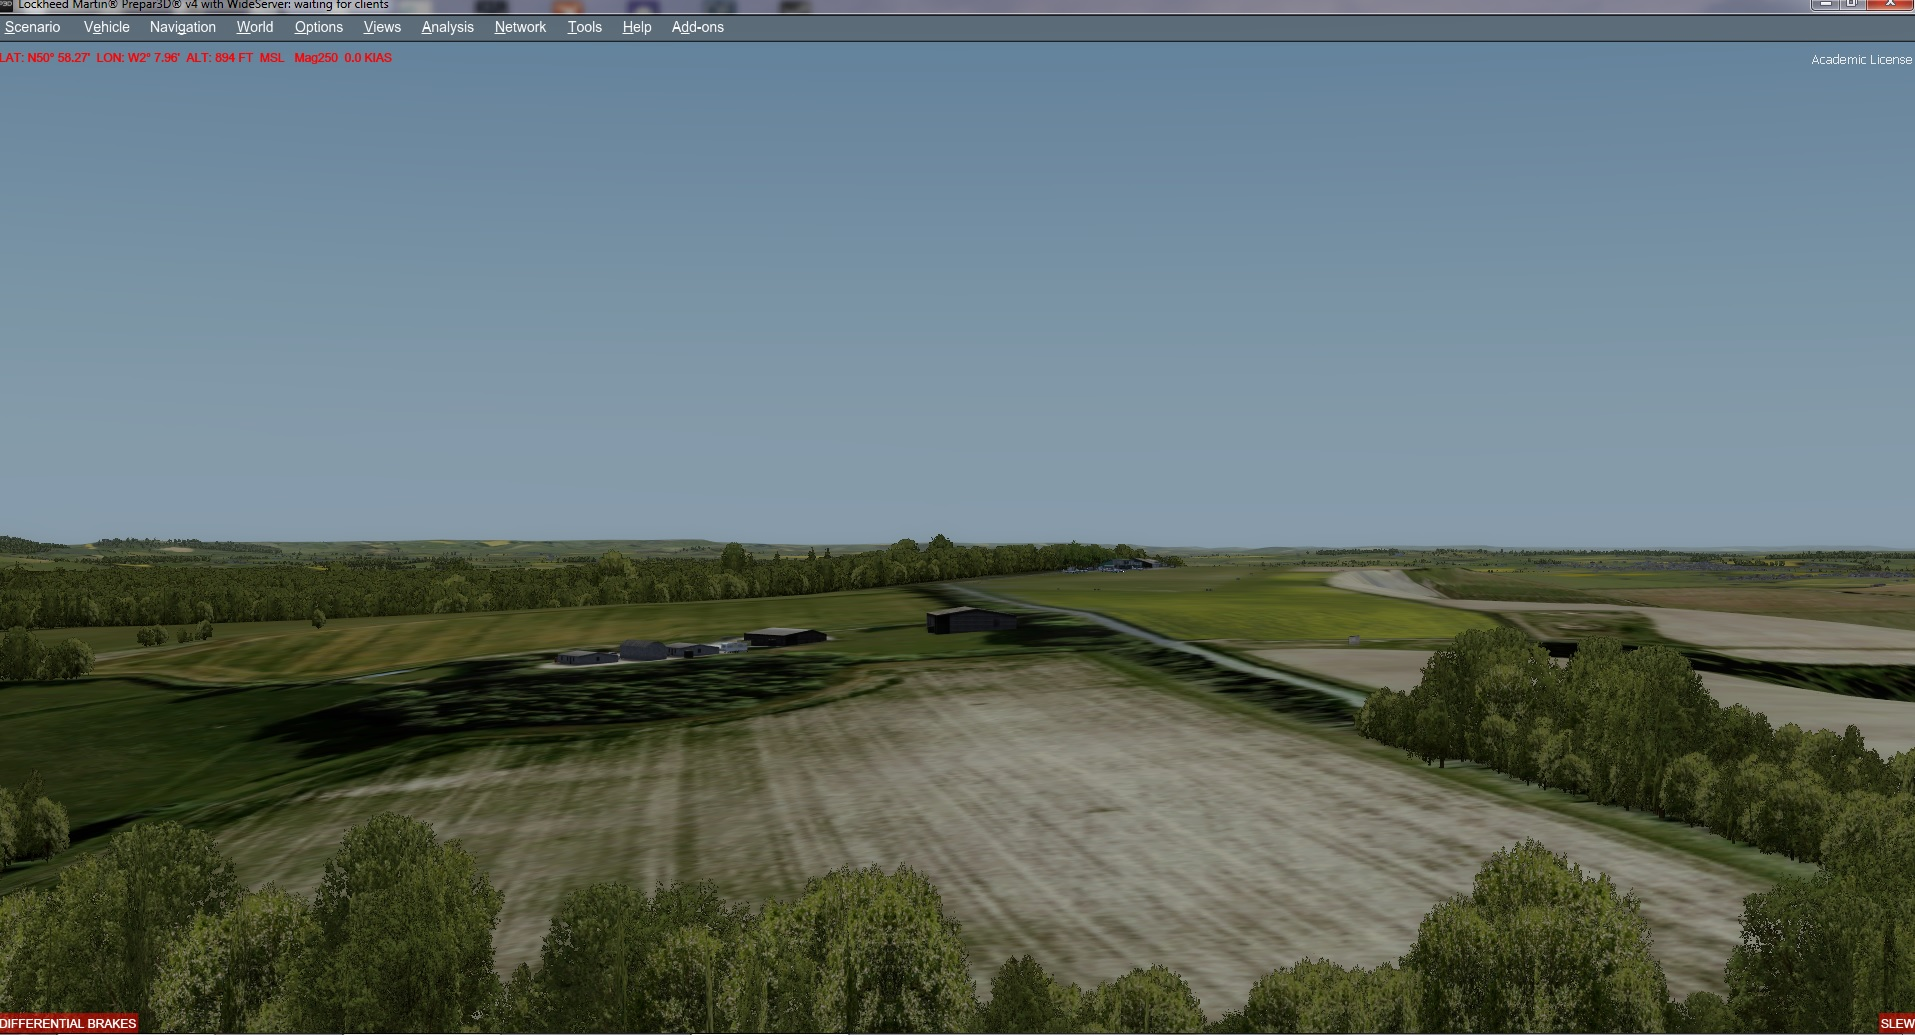 John Burgess's Content - Orbx Community and Support Forums